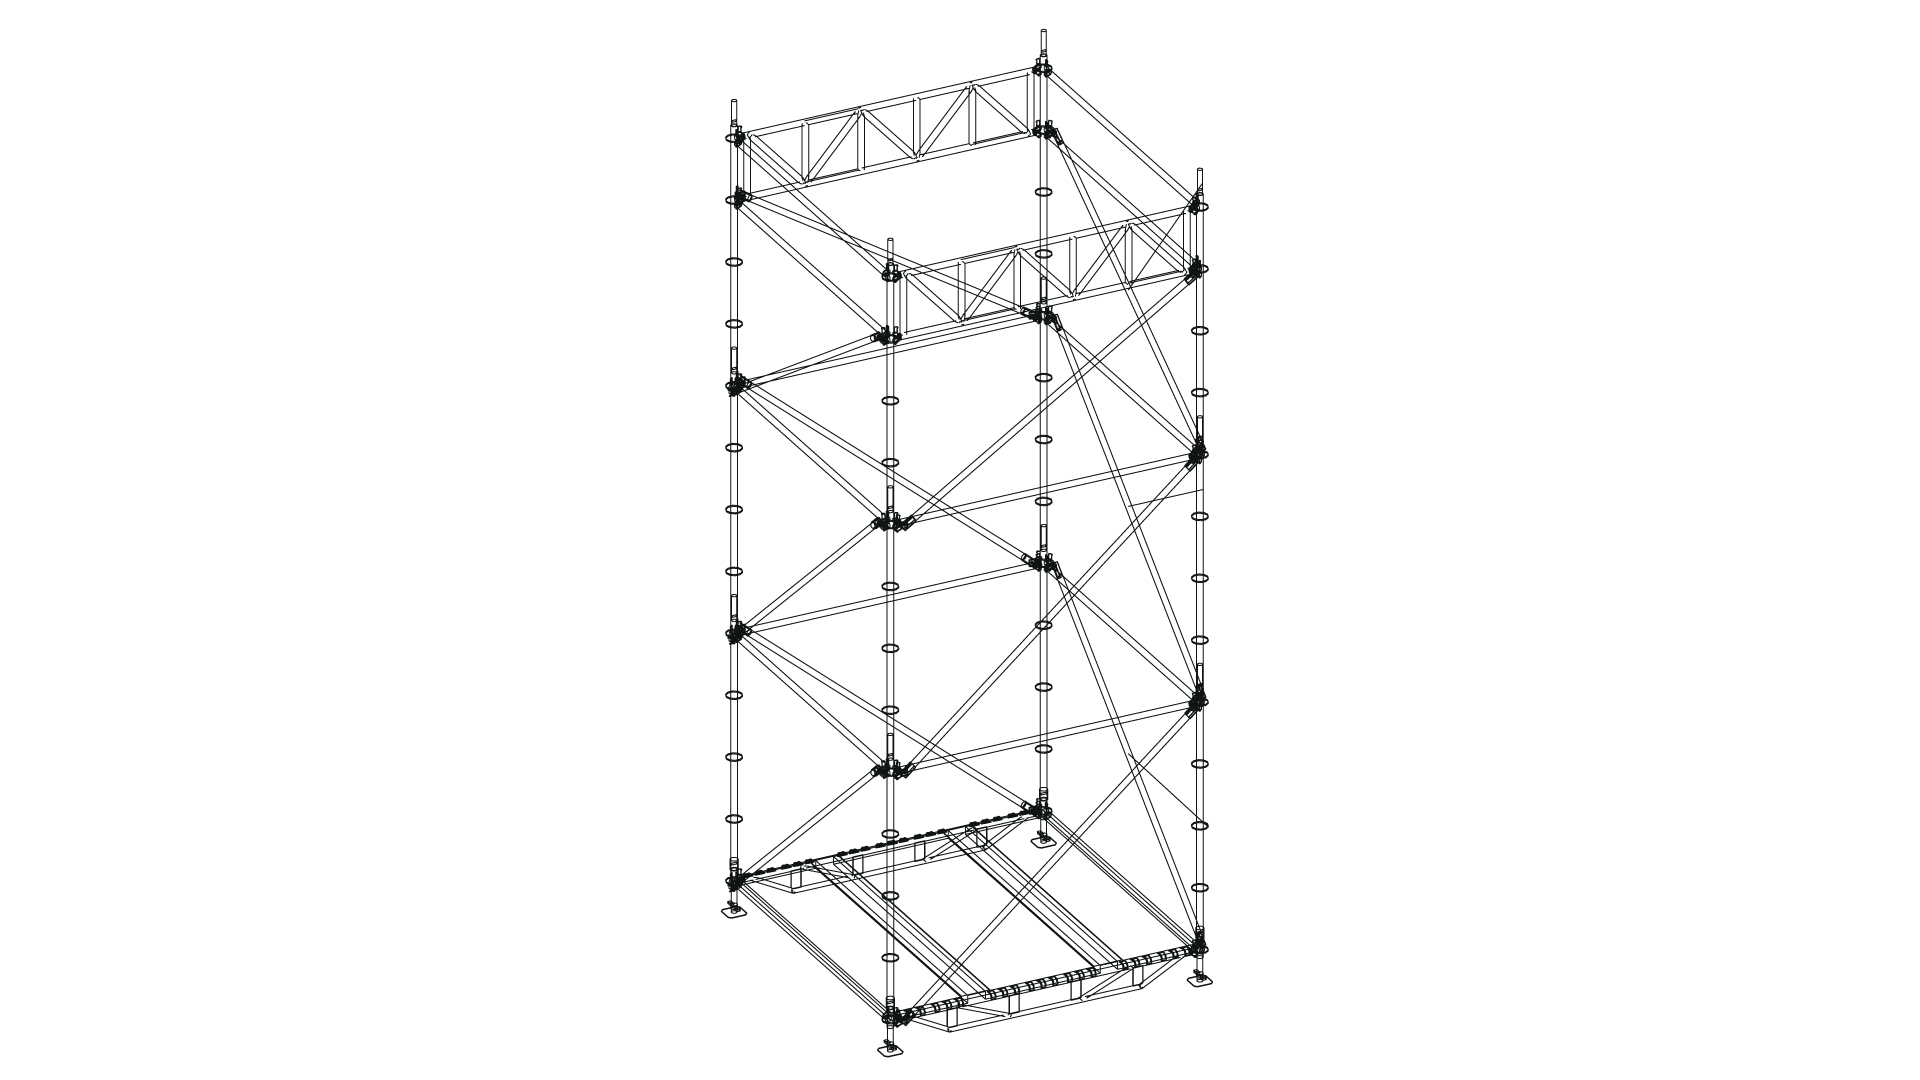 Audio, lights and direction towers scaffolding